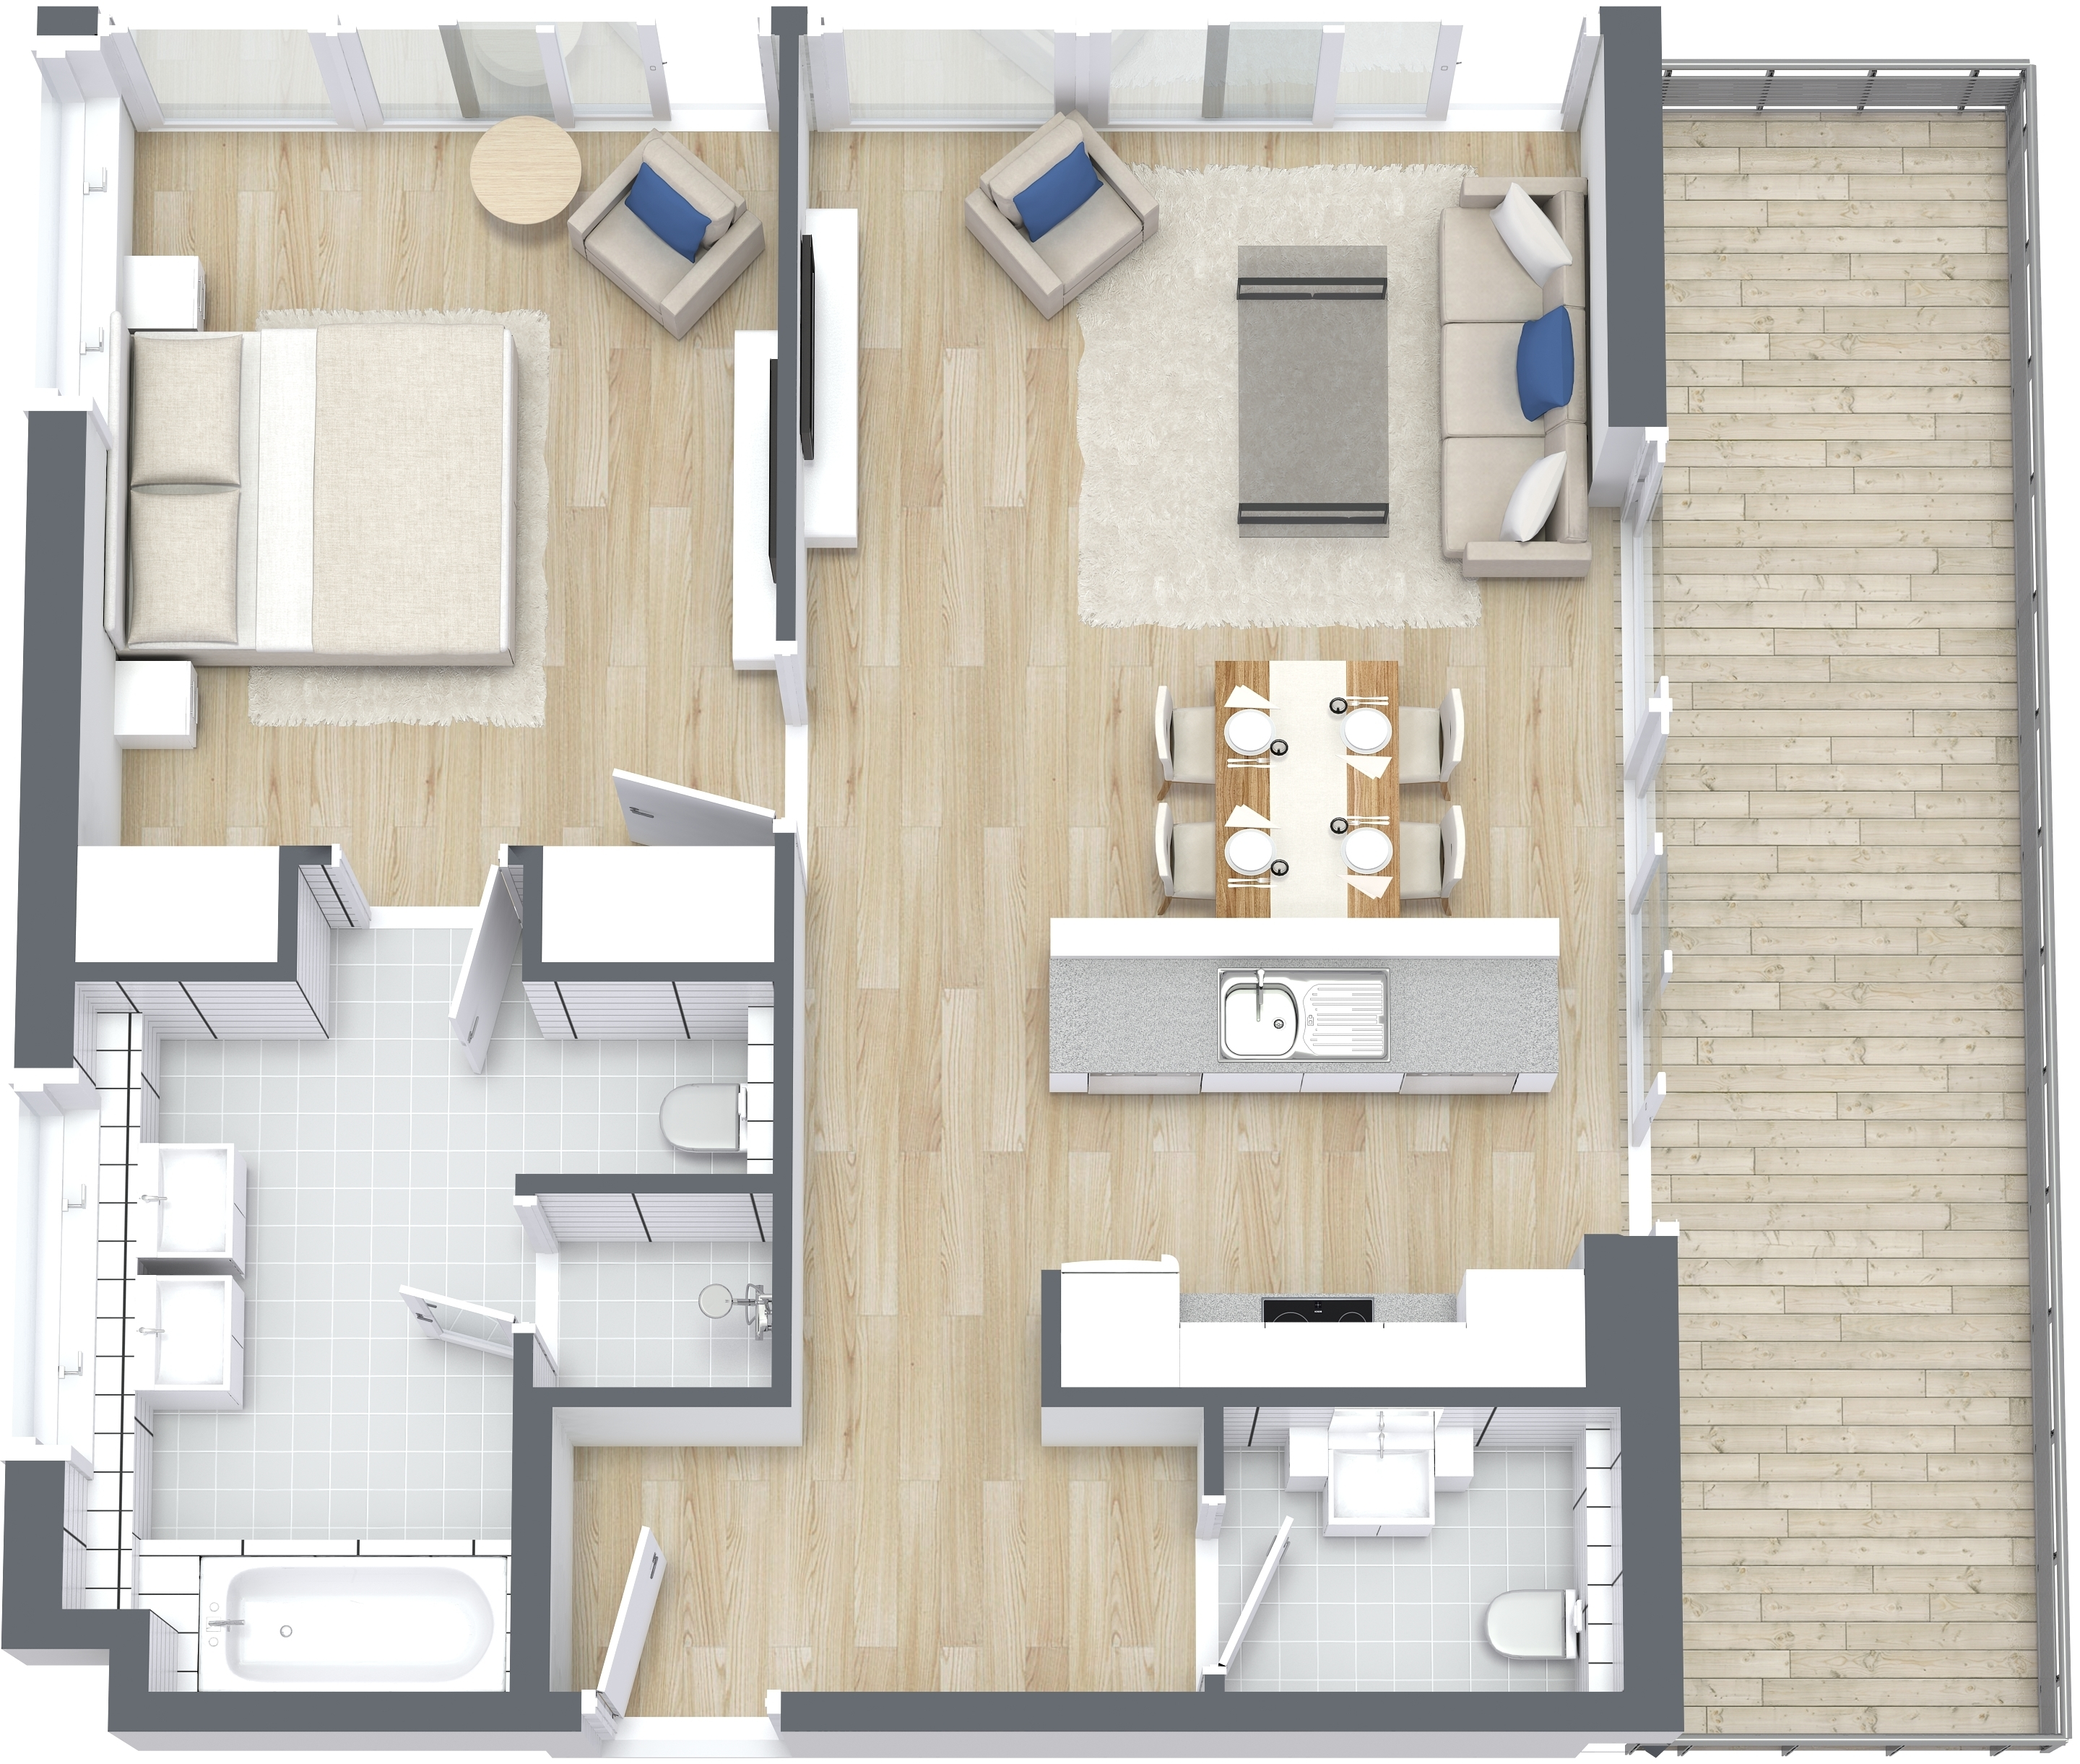 1 Bedroom Type A Apartment, Size 1000 sq ft